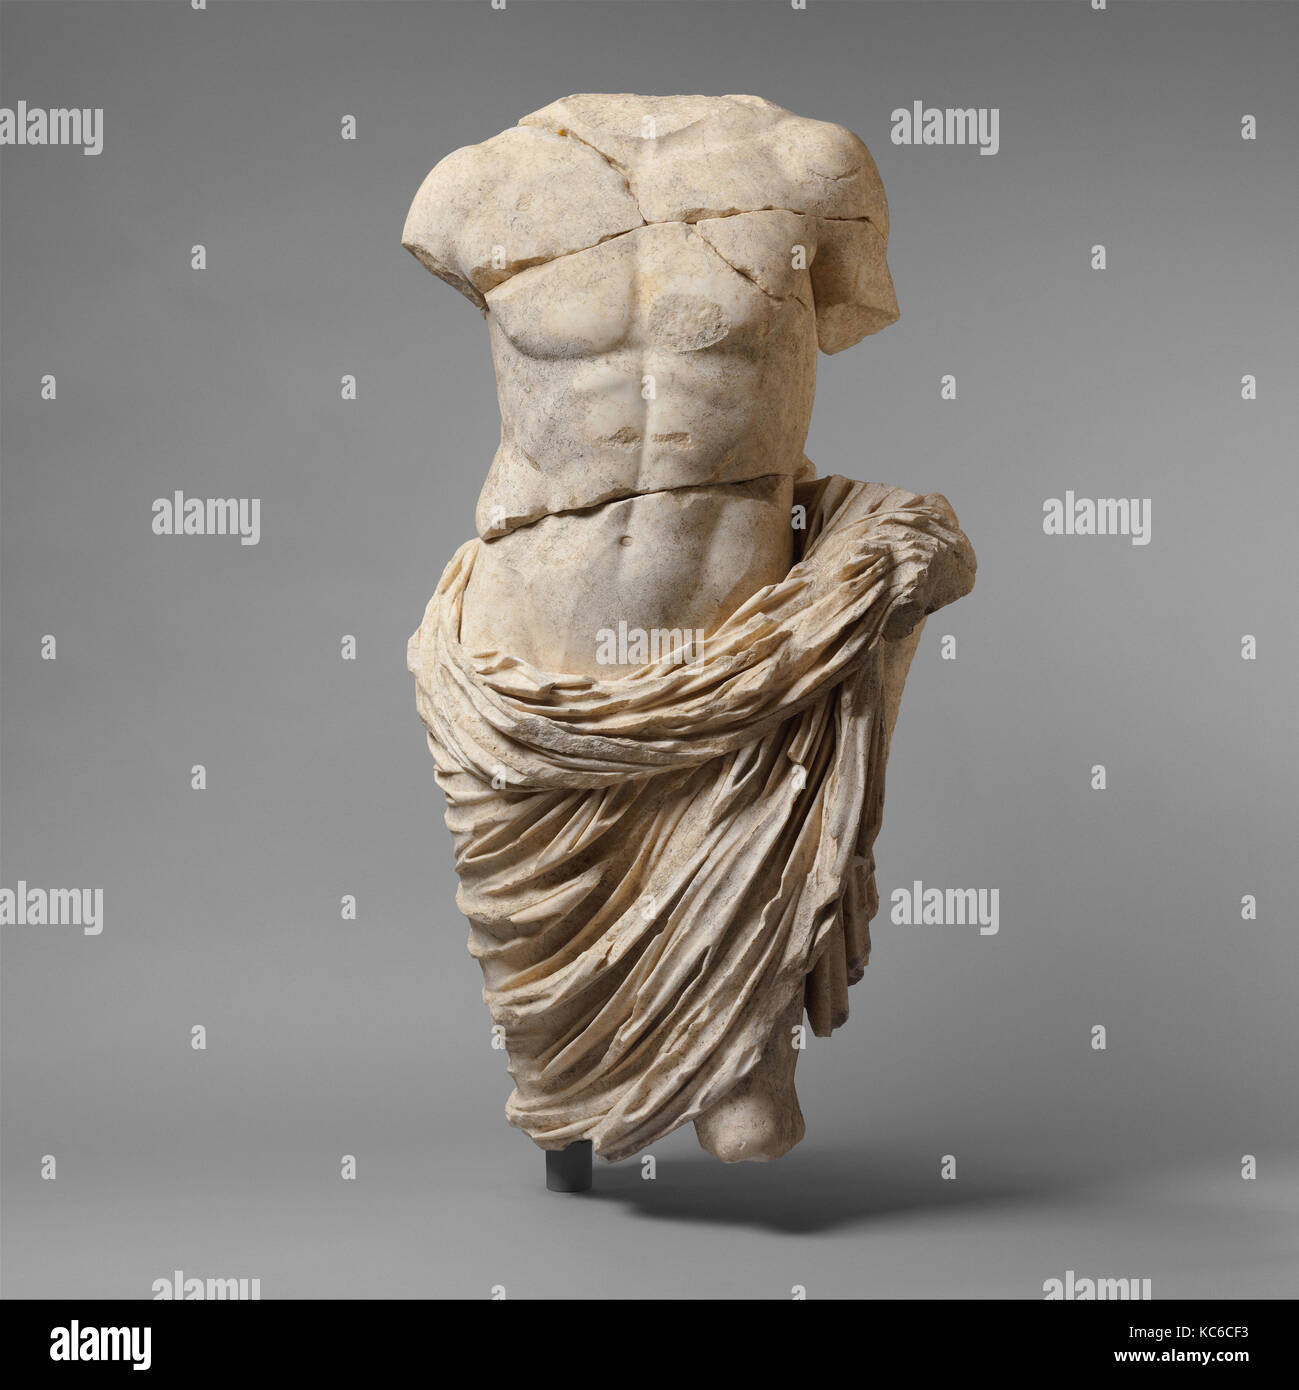 Augustan Statue Stock Photos & Augustan Statue Stock Images